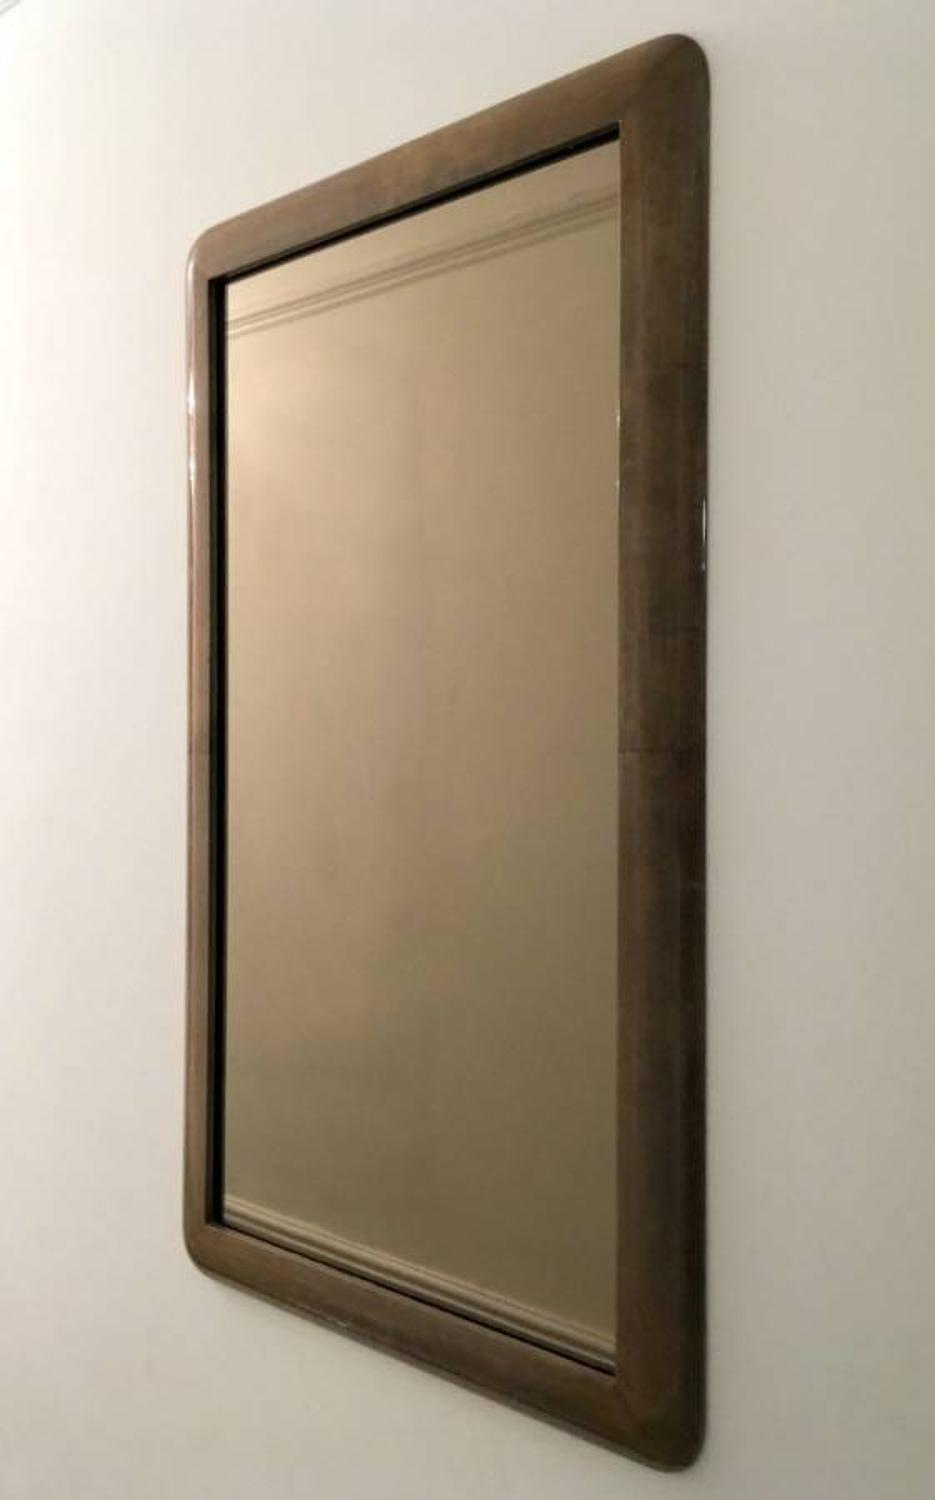 Italian lacquered goatskin or parchment mirror